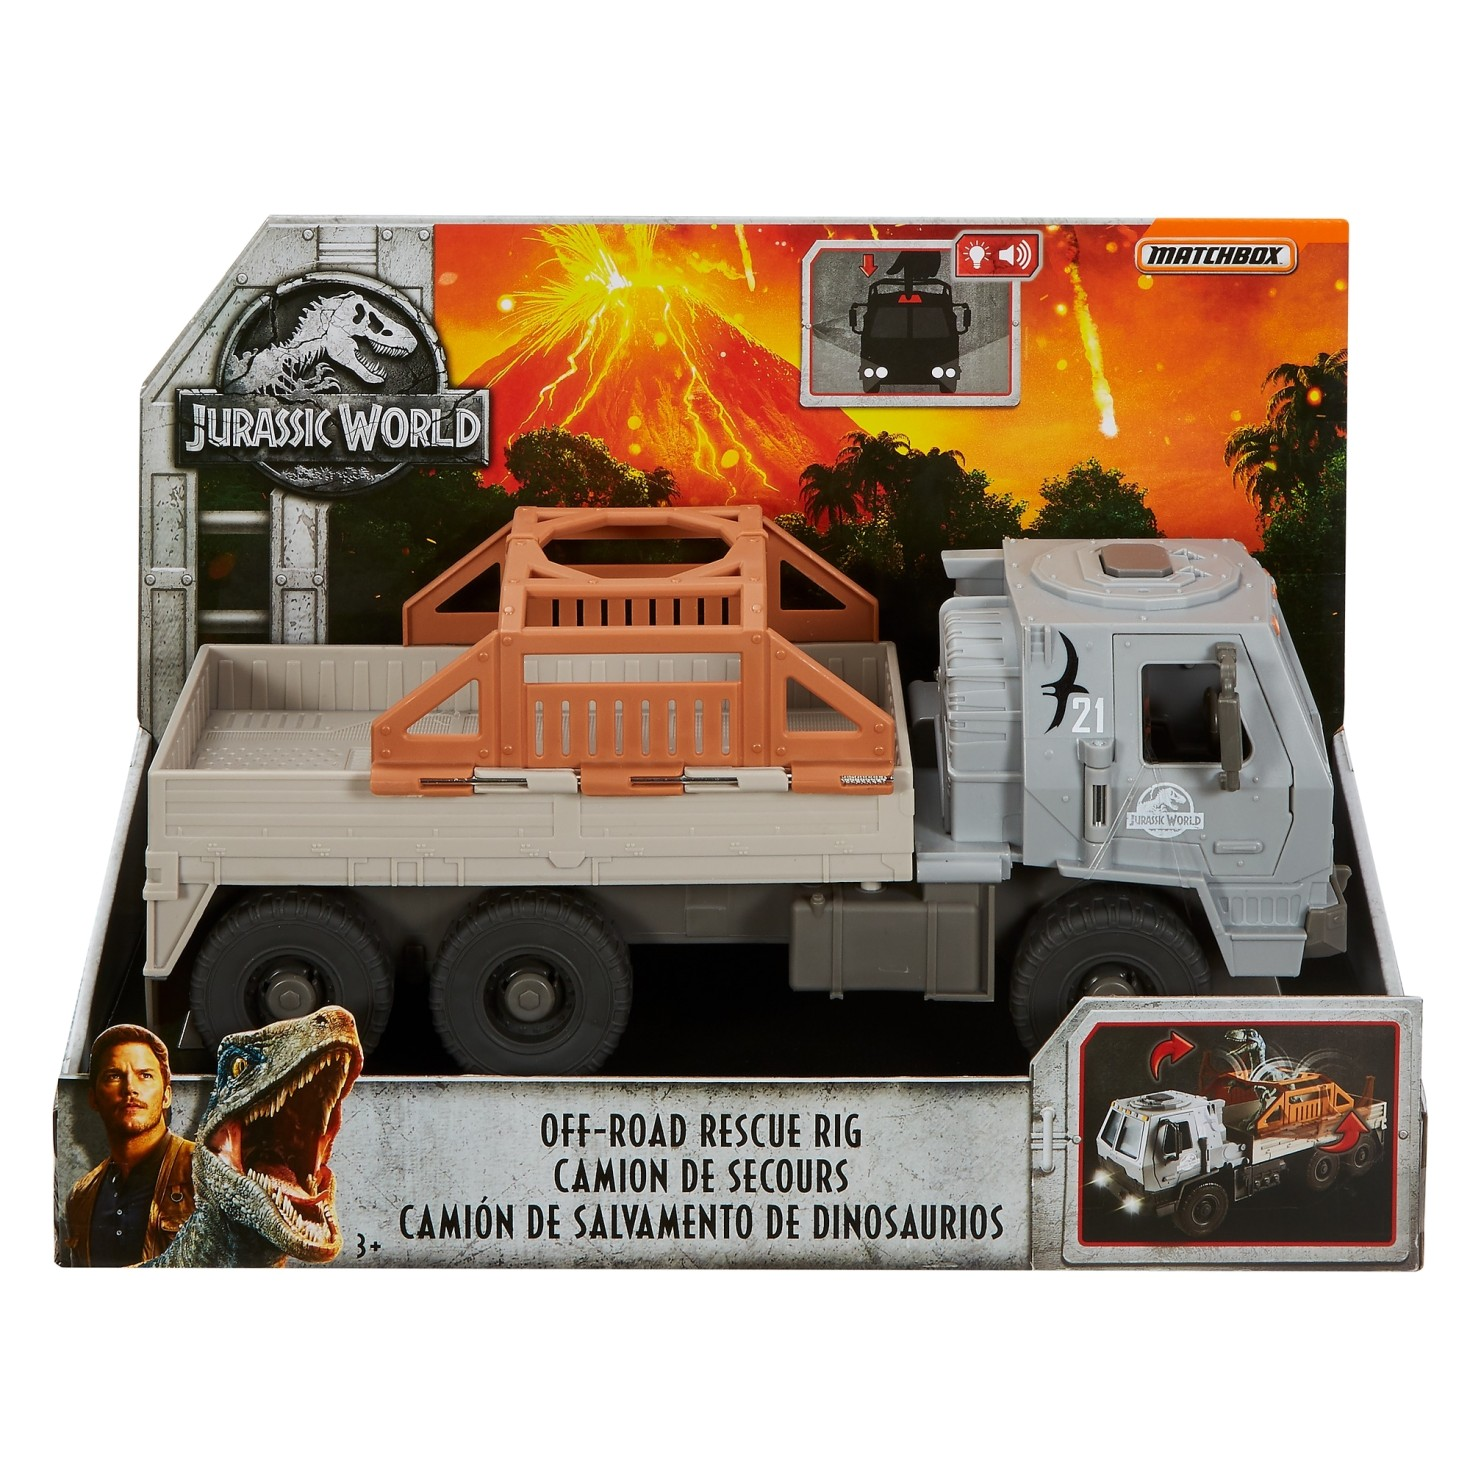 JURASSIC WORLD OFF-ROAD RESCUE RIG